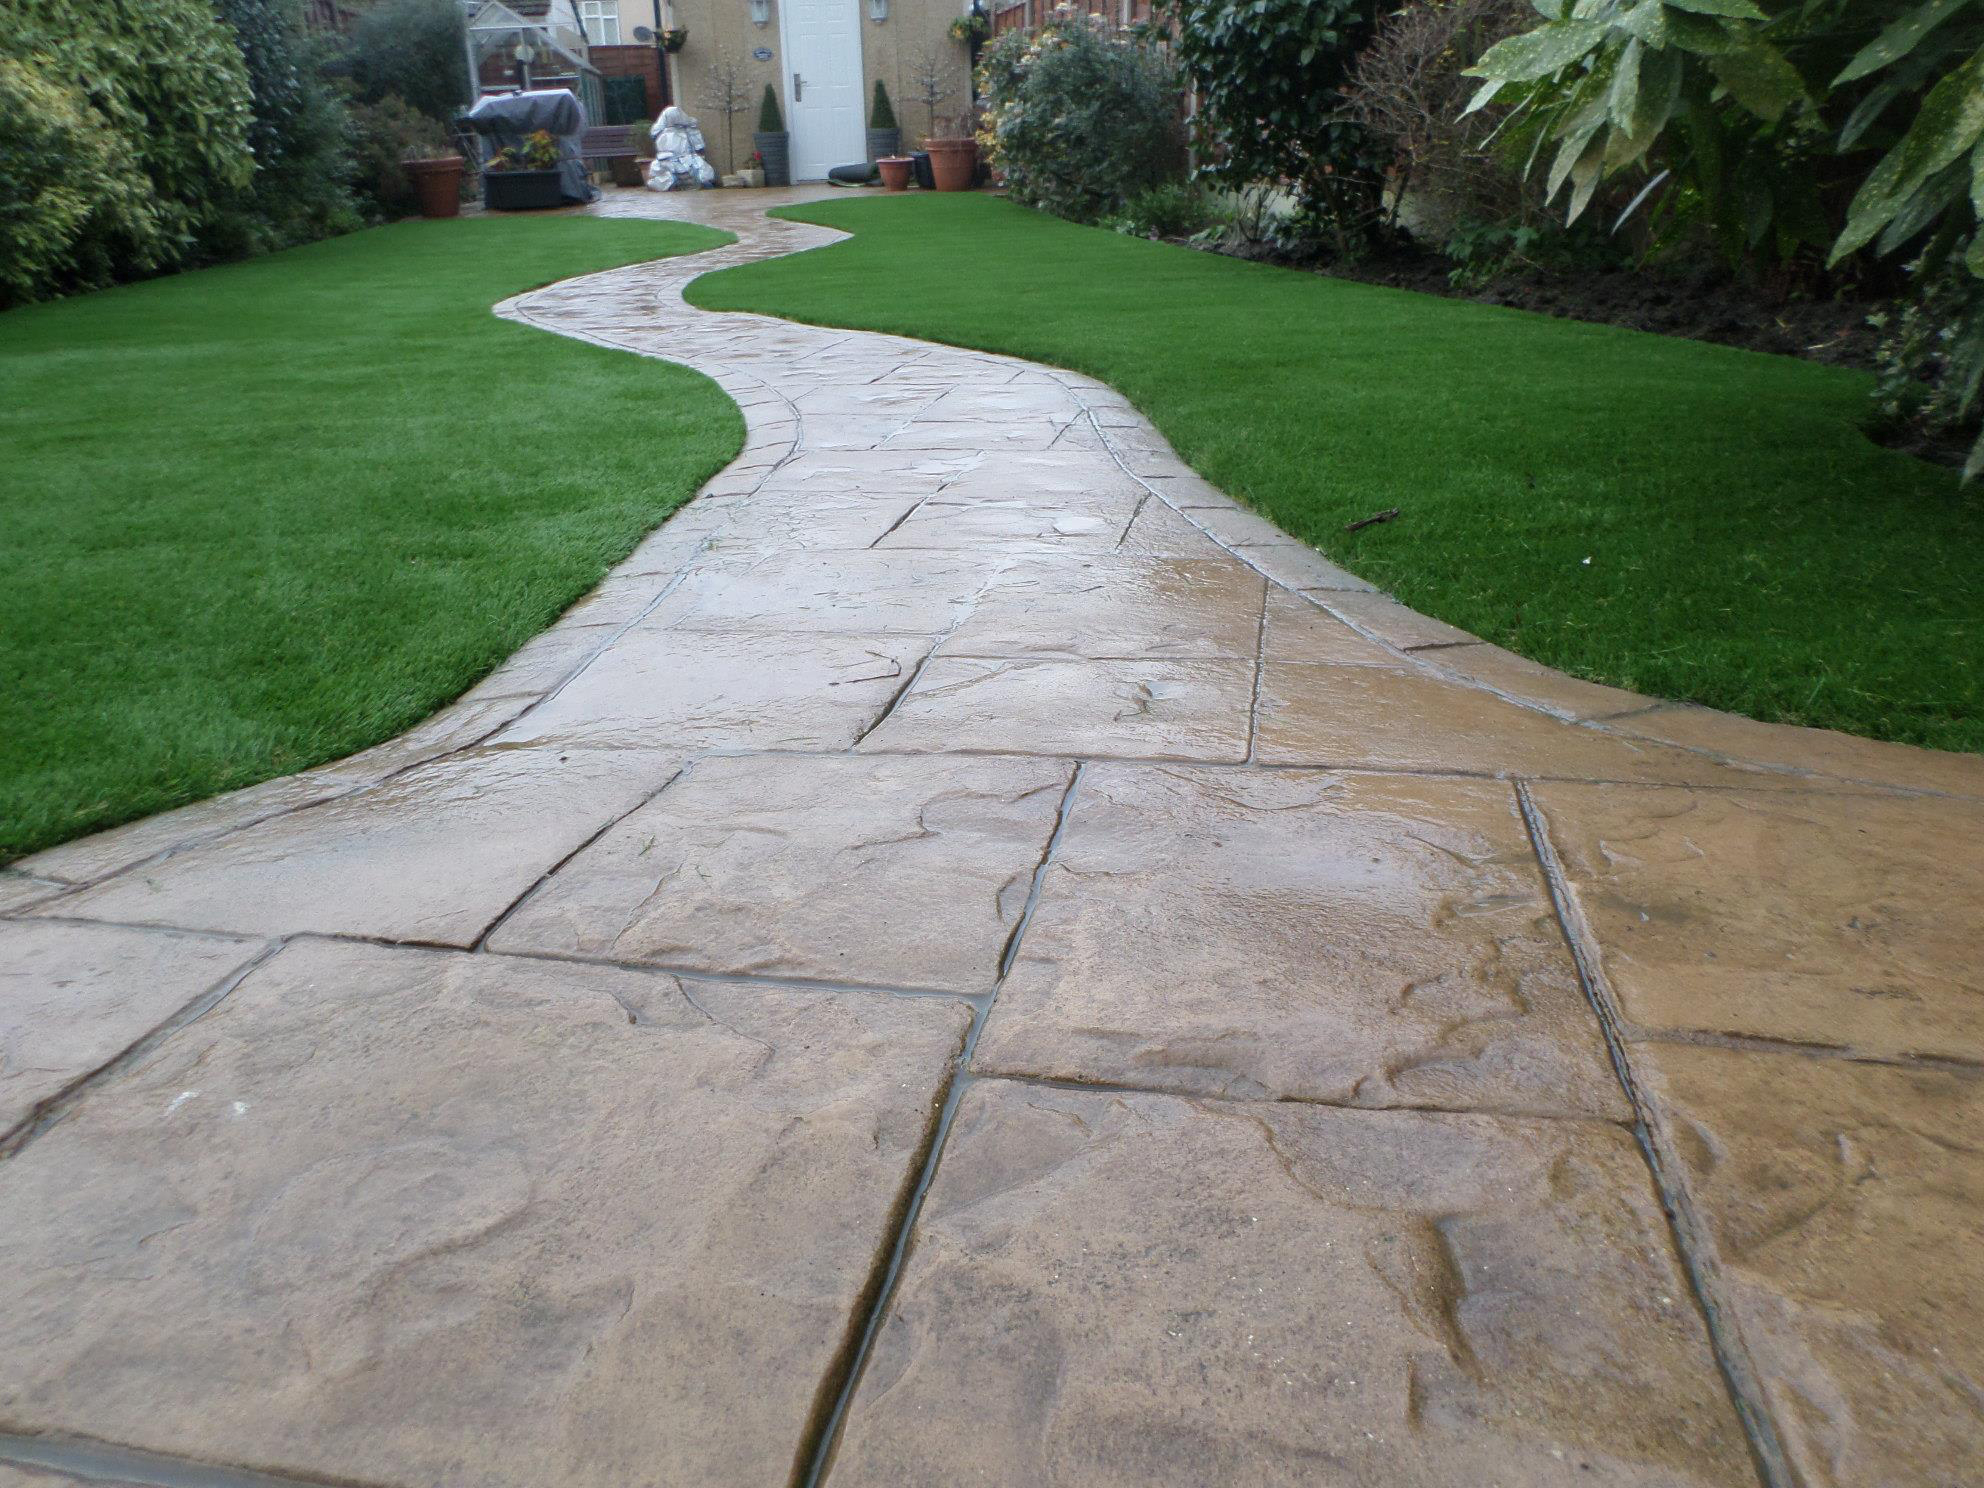 synthetic turf and stone path leading to home